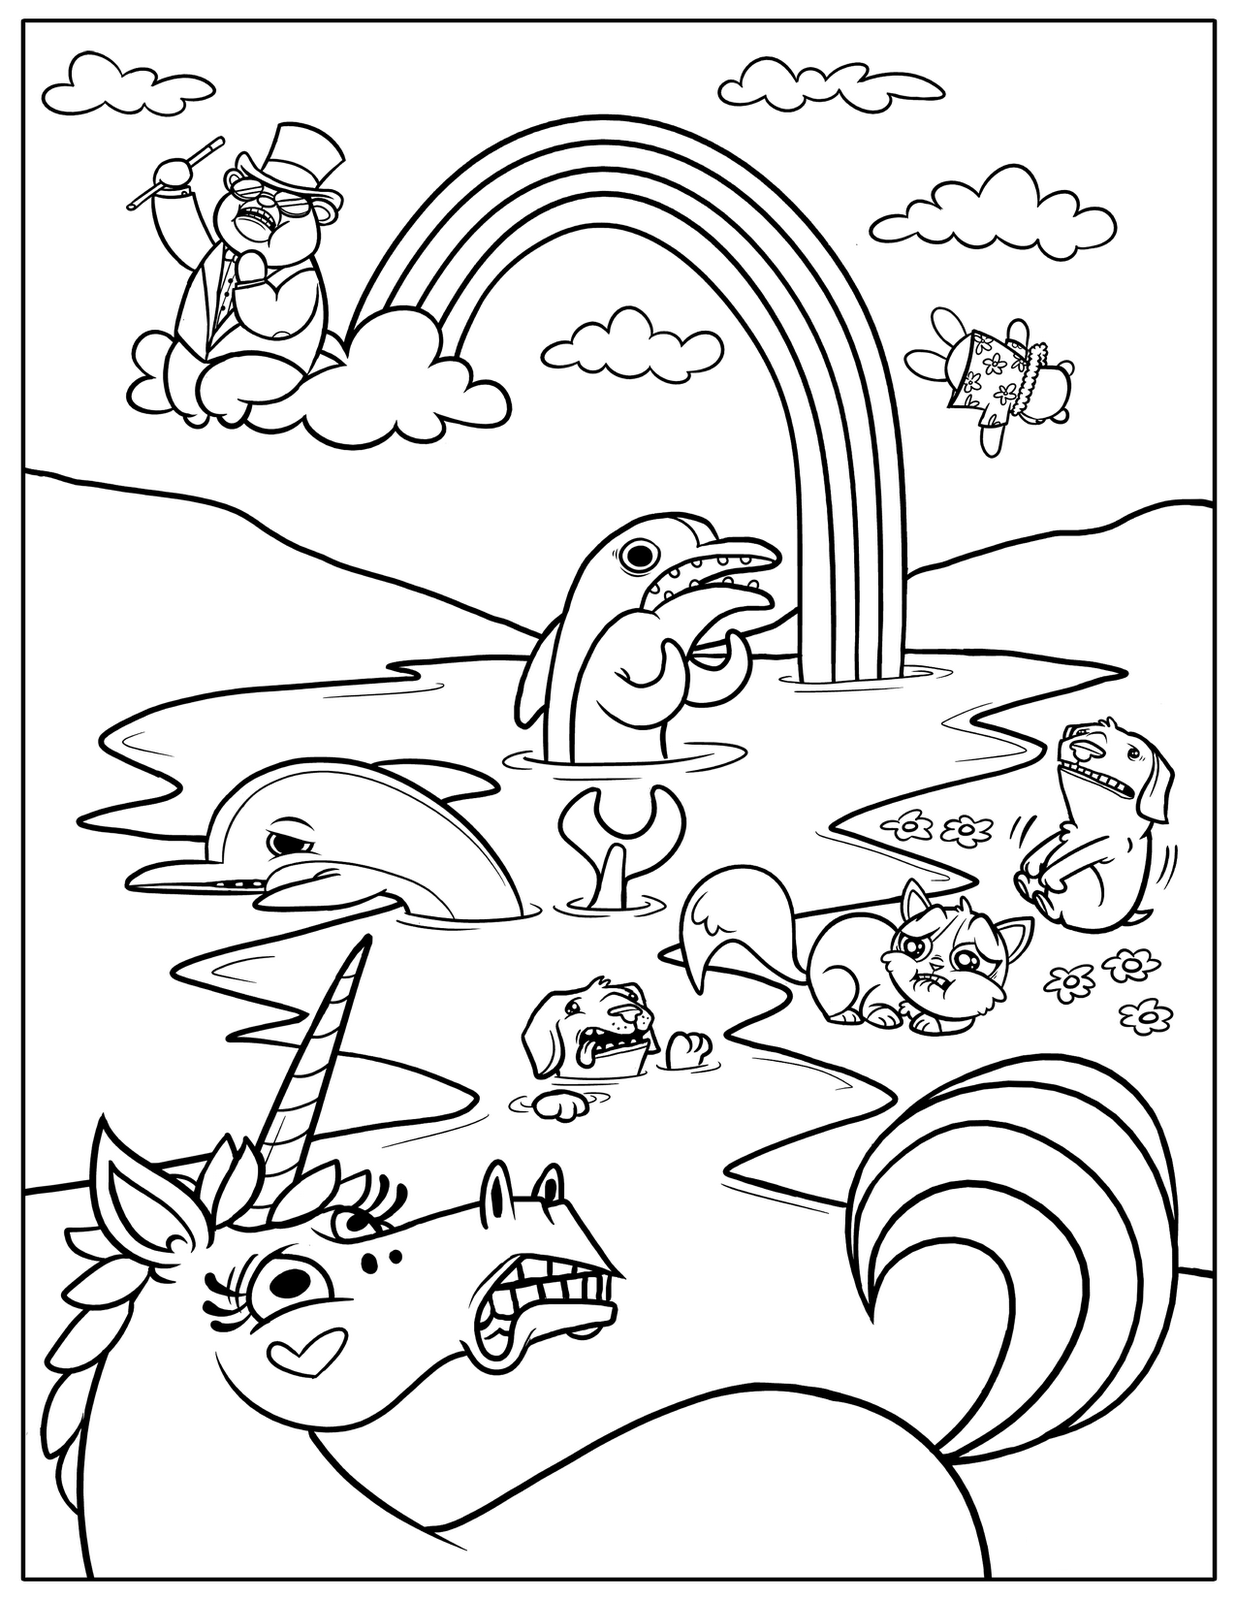 Coloring Pages For Toddlers Printable Free Coloring Pages